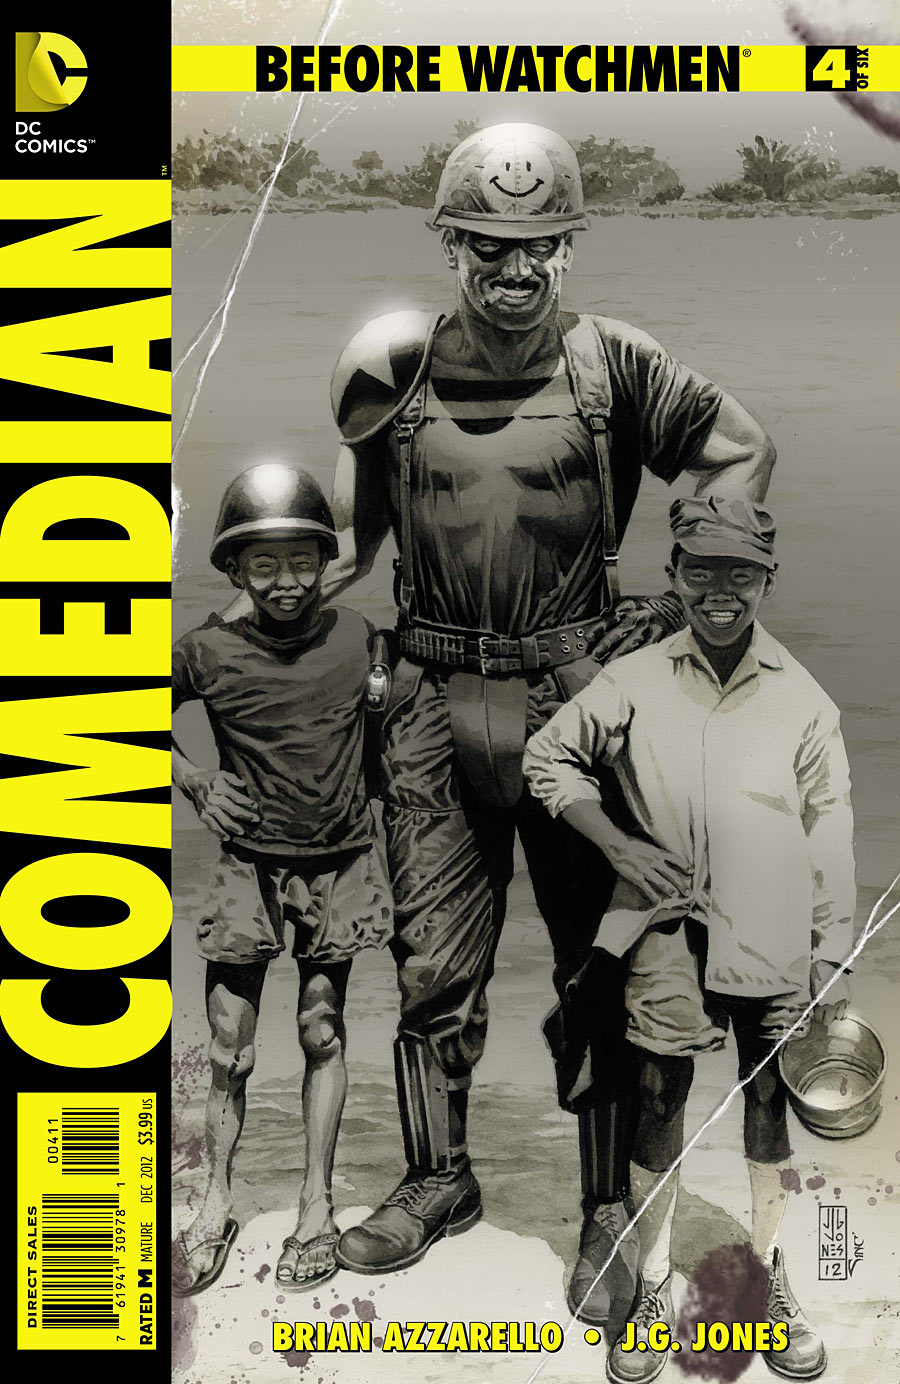 Before Watchmen Comedian 4 C Before Watchmen: Comedian #4 Review